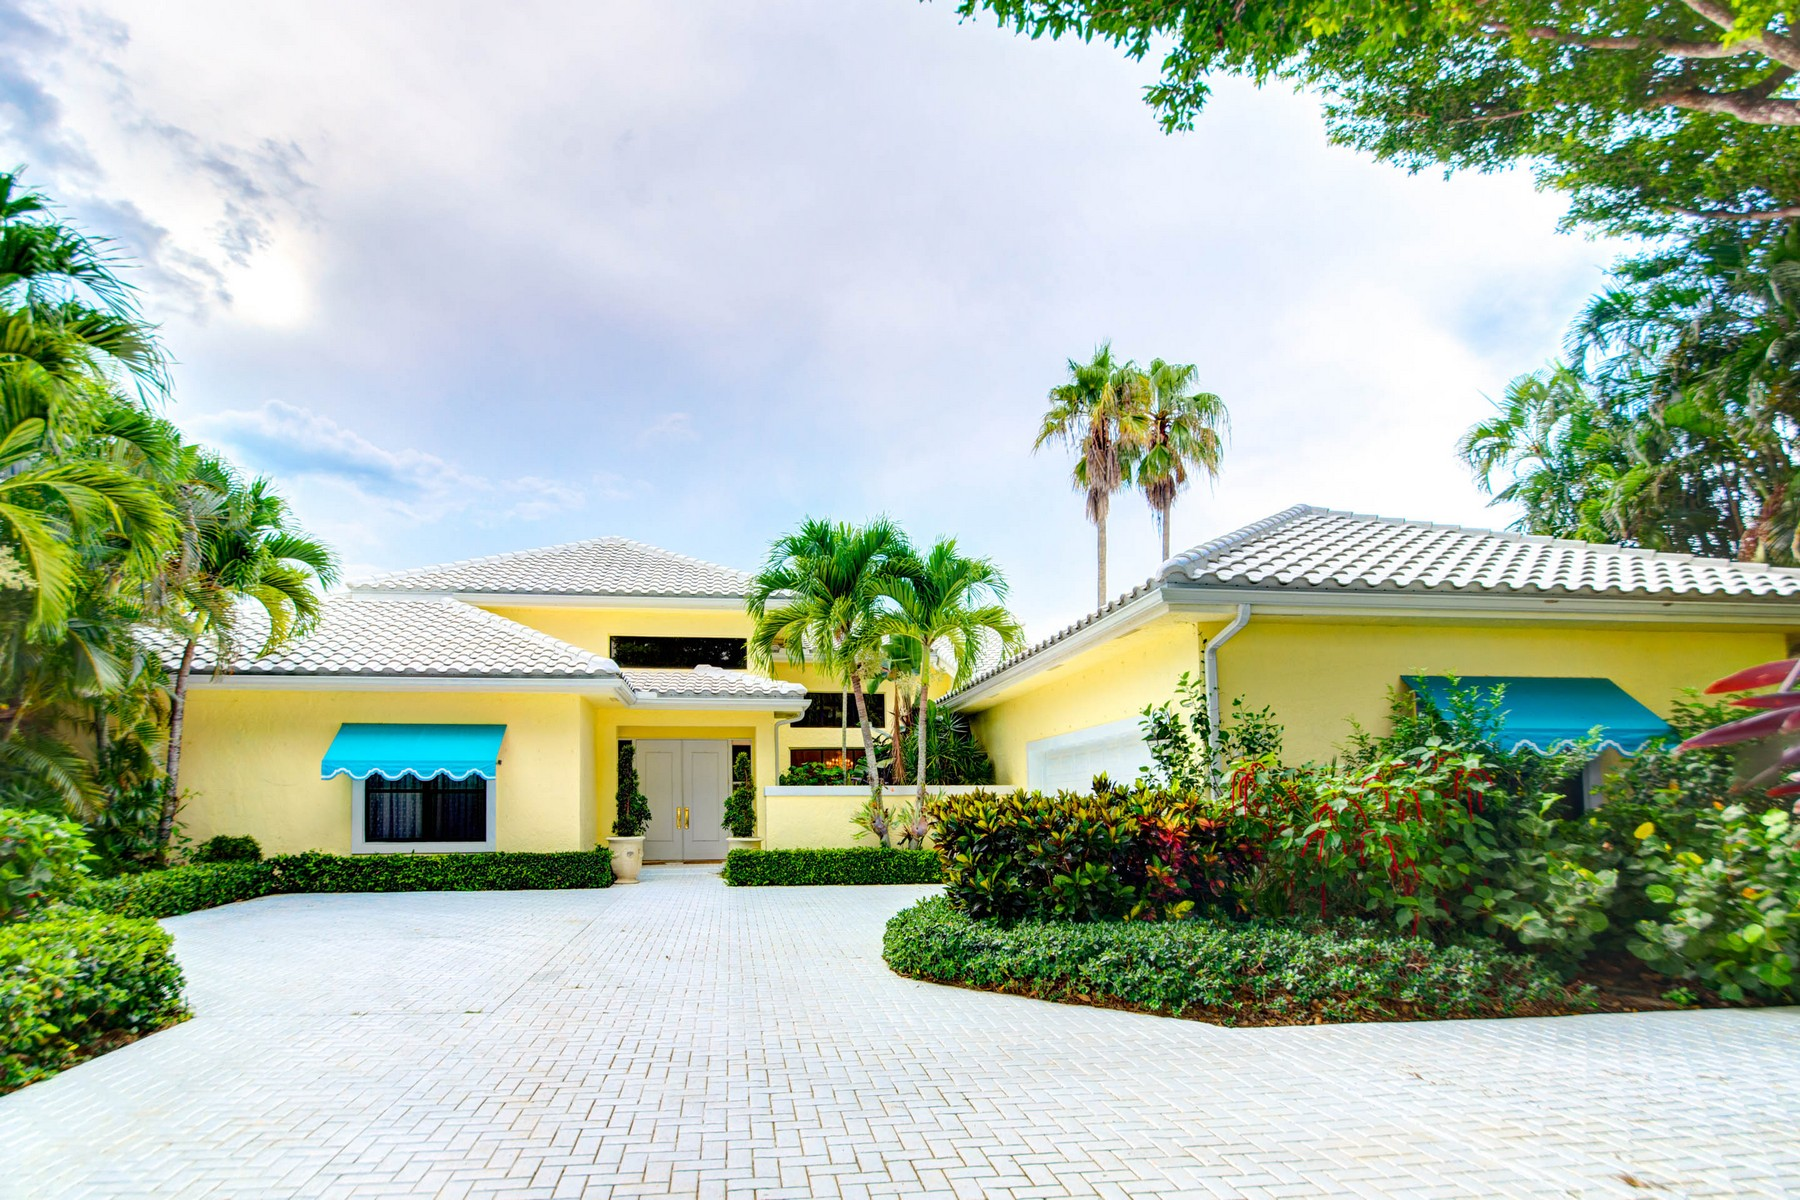 Maison unifamiliale pour l à louer à 2425 Golf Brook Drive 2425 Golf Brook Drive Wellington, Florida 33414 États-Unis